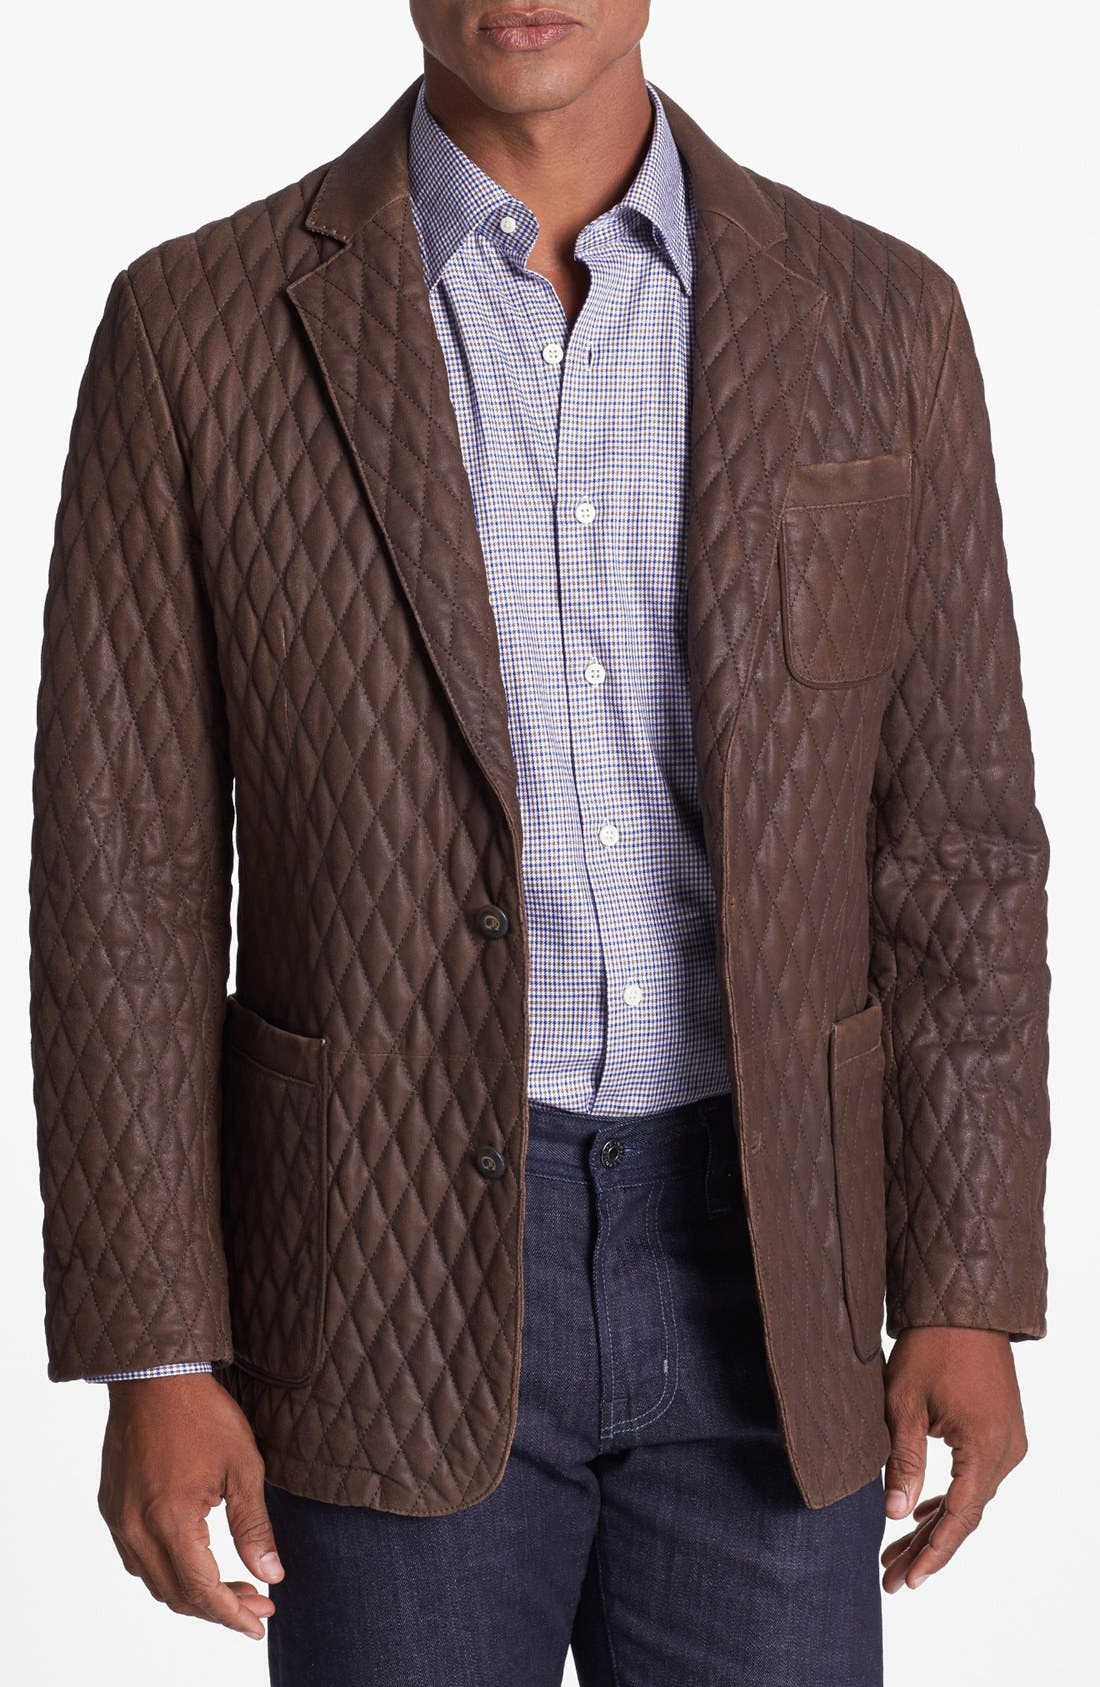 Alternate Image 1 Selected - Robert Graham 'Miles' Quilted Suede Sportcoat